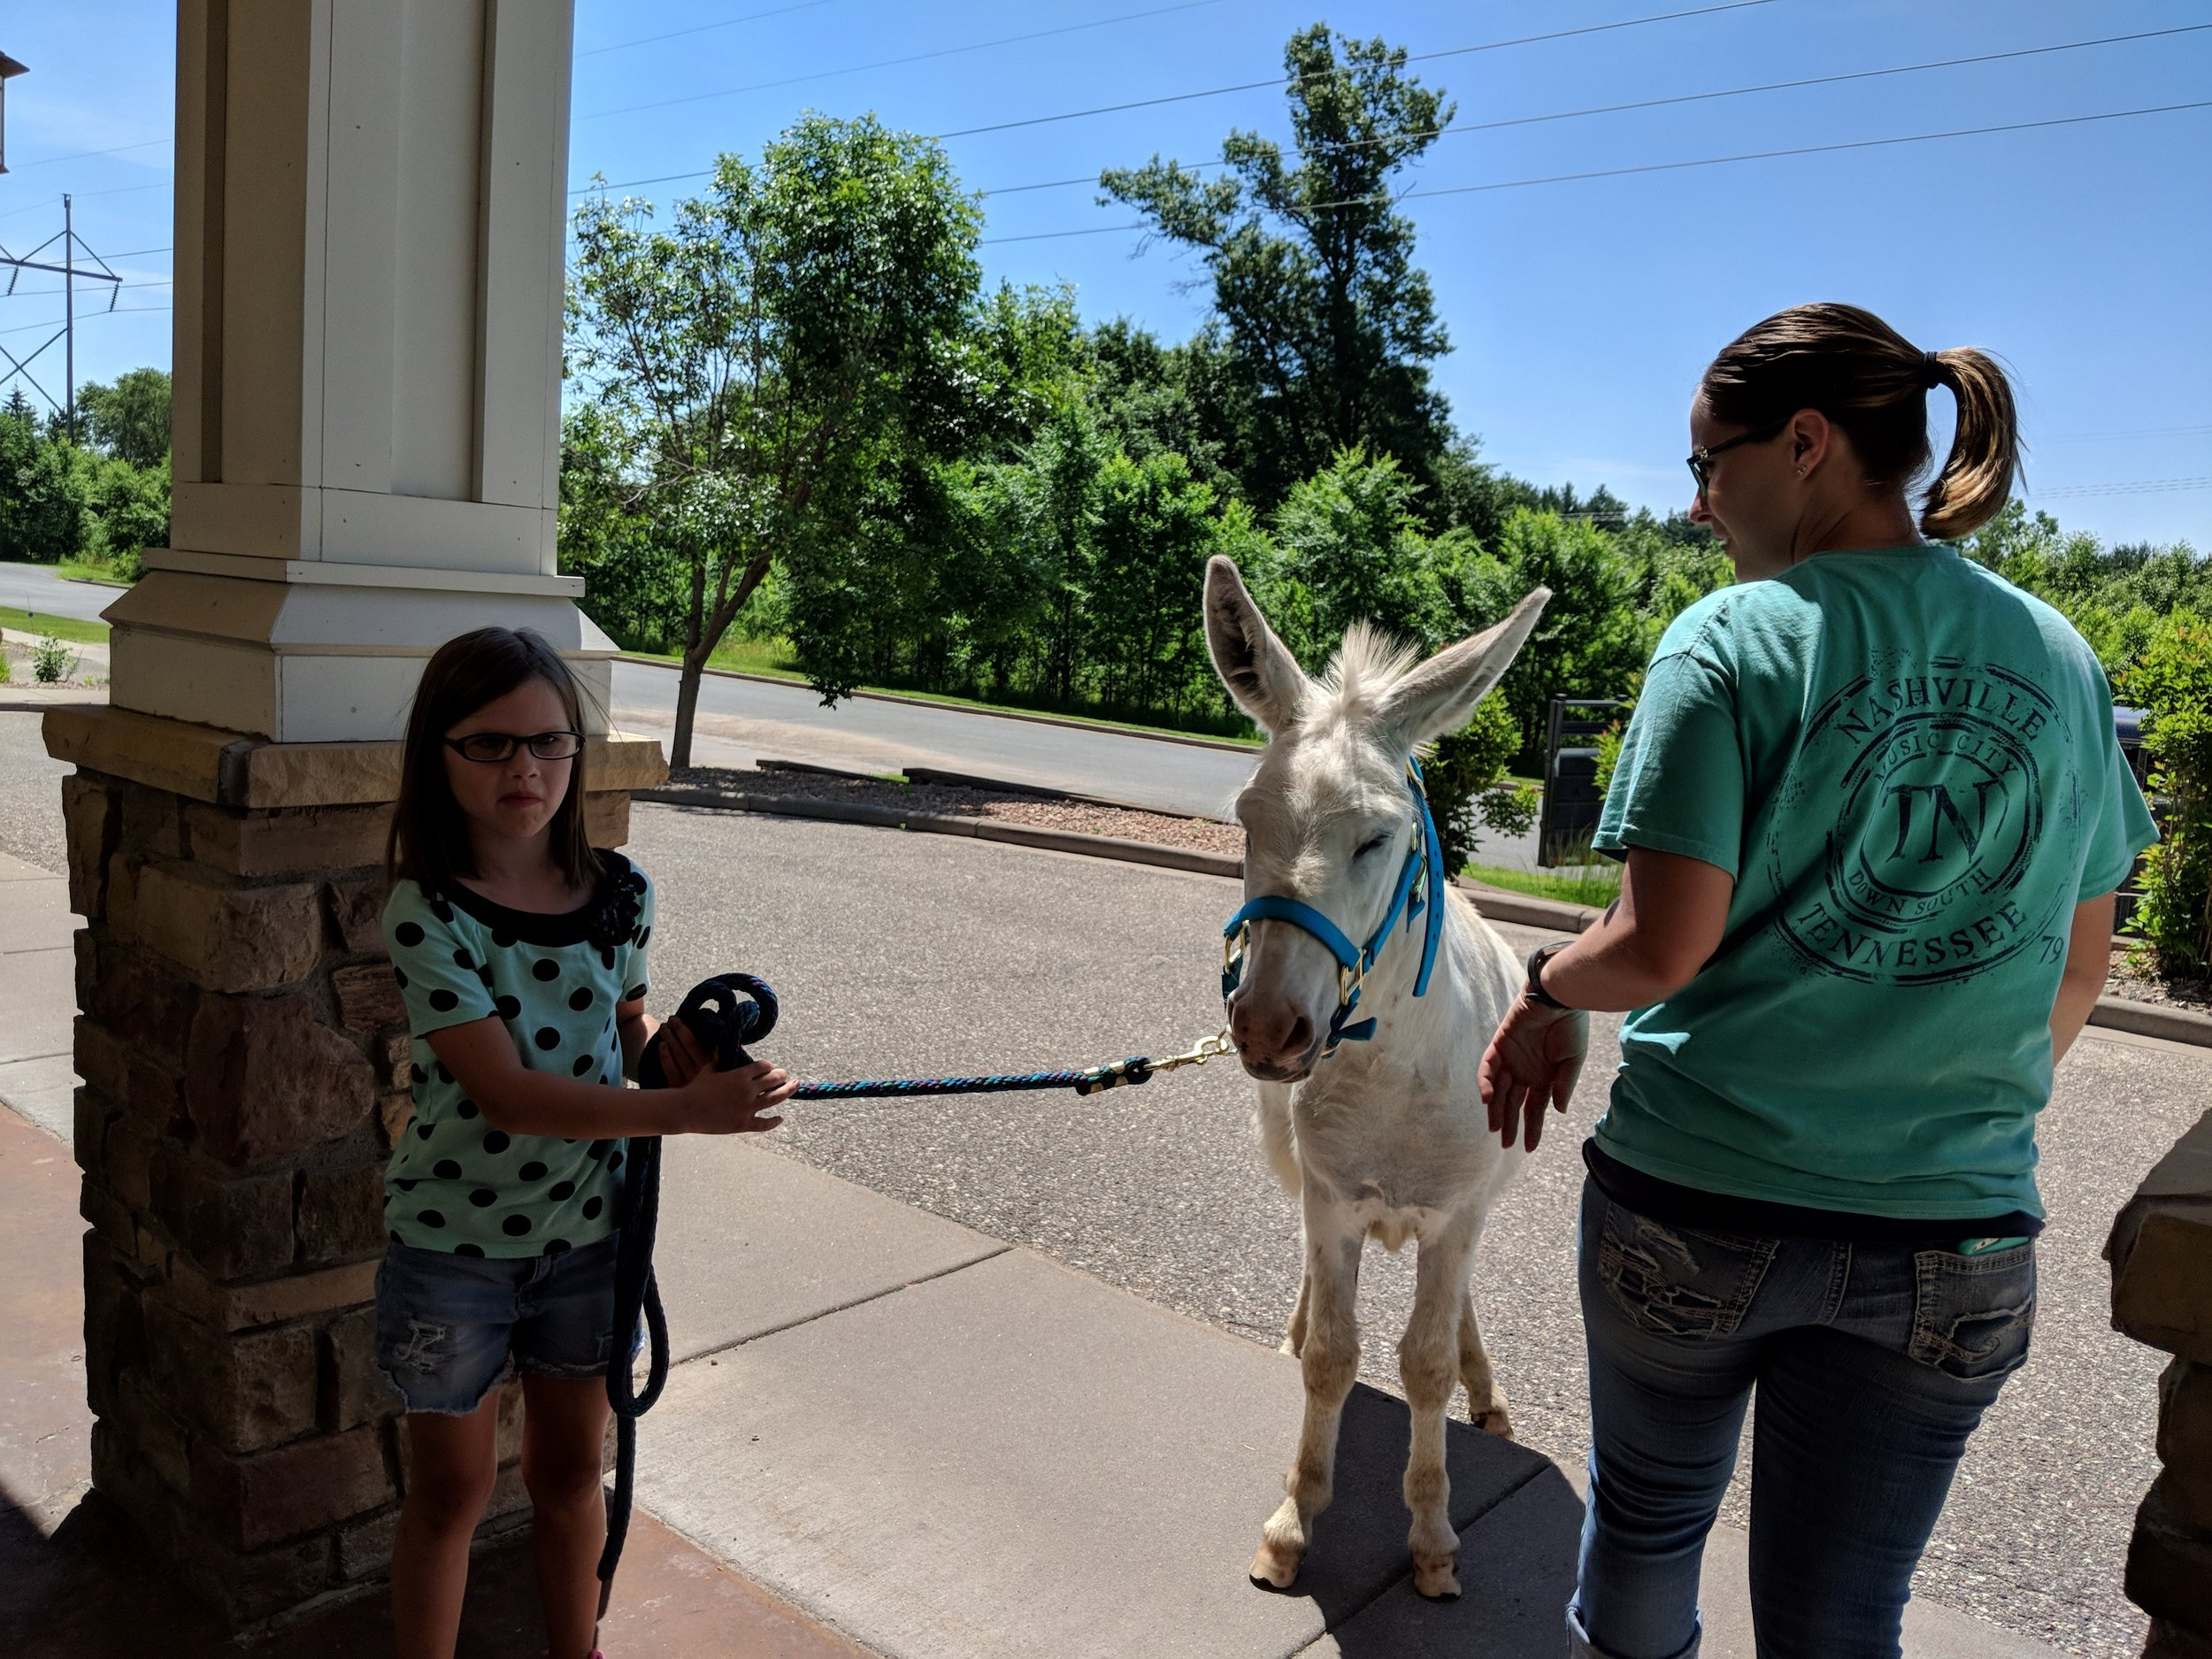 A visit from a fair calf & a donkey!! Thank you Courtney for sharing your time and animals with our tenants! 3.jpg